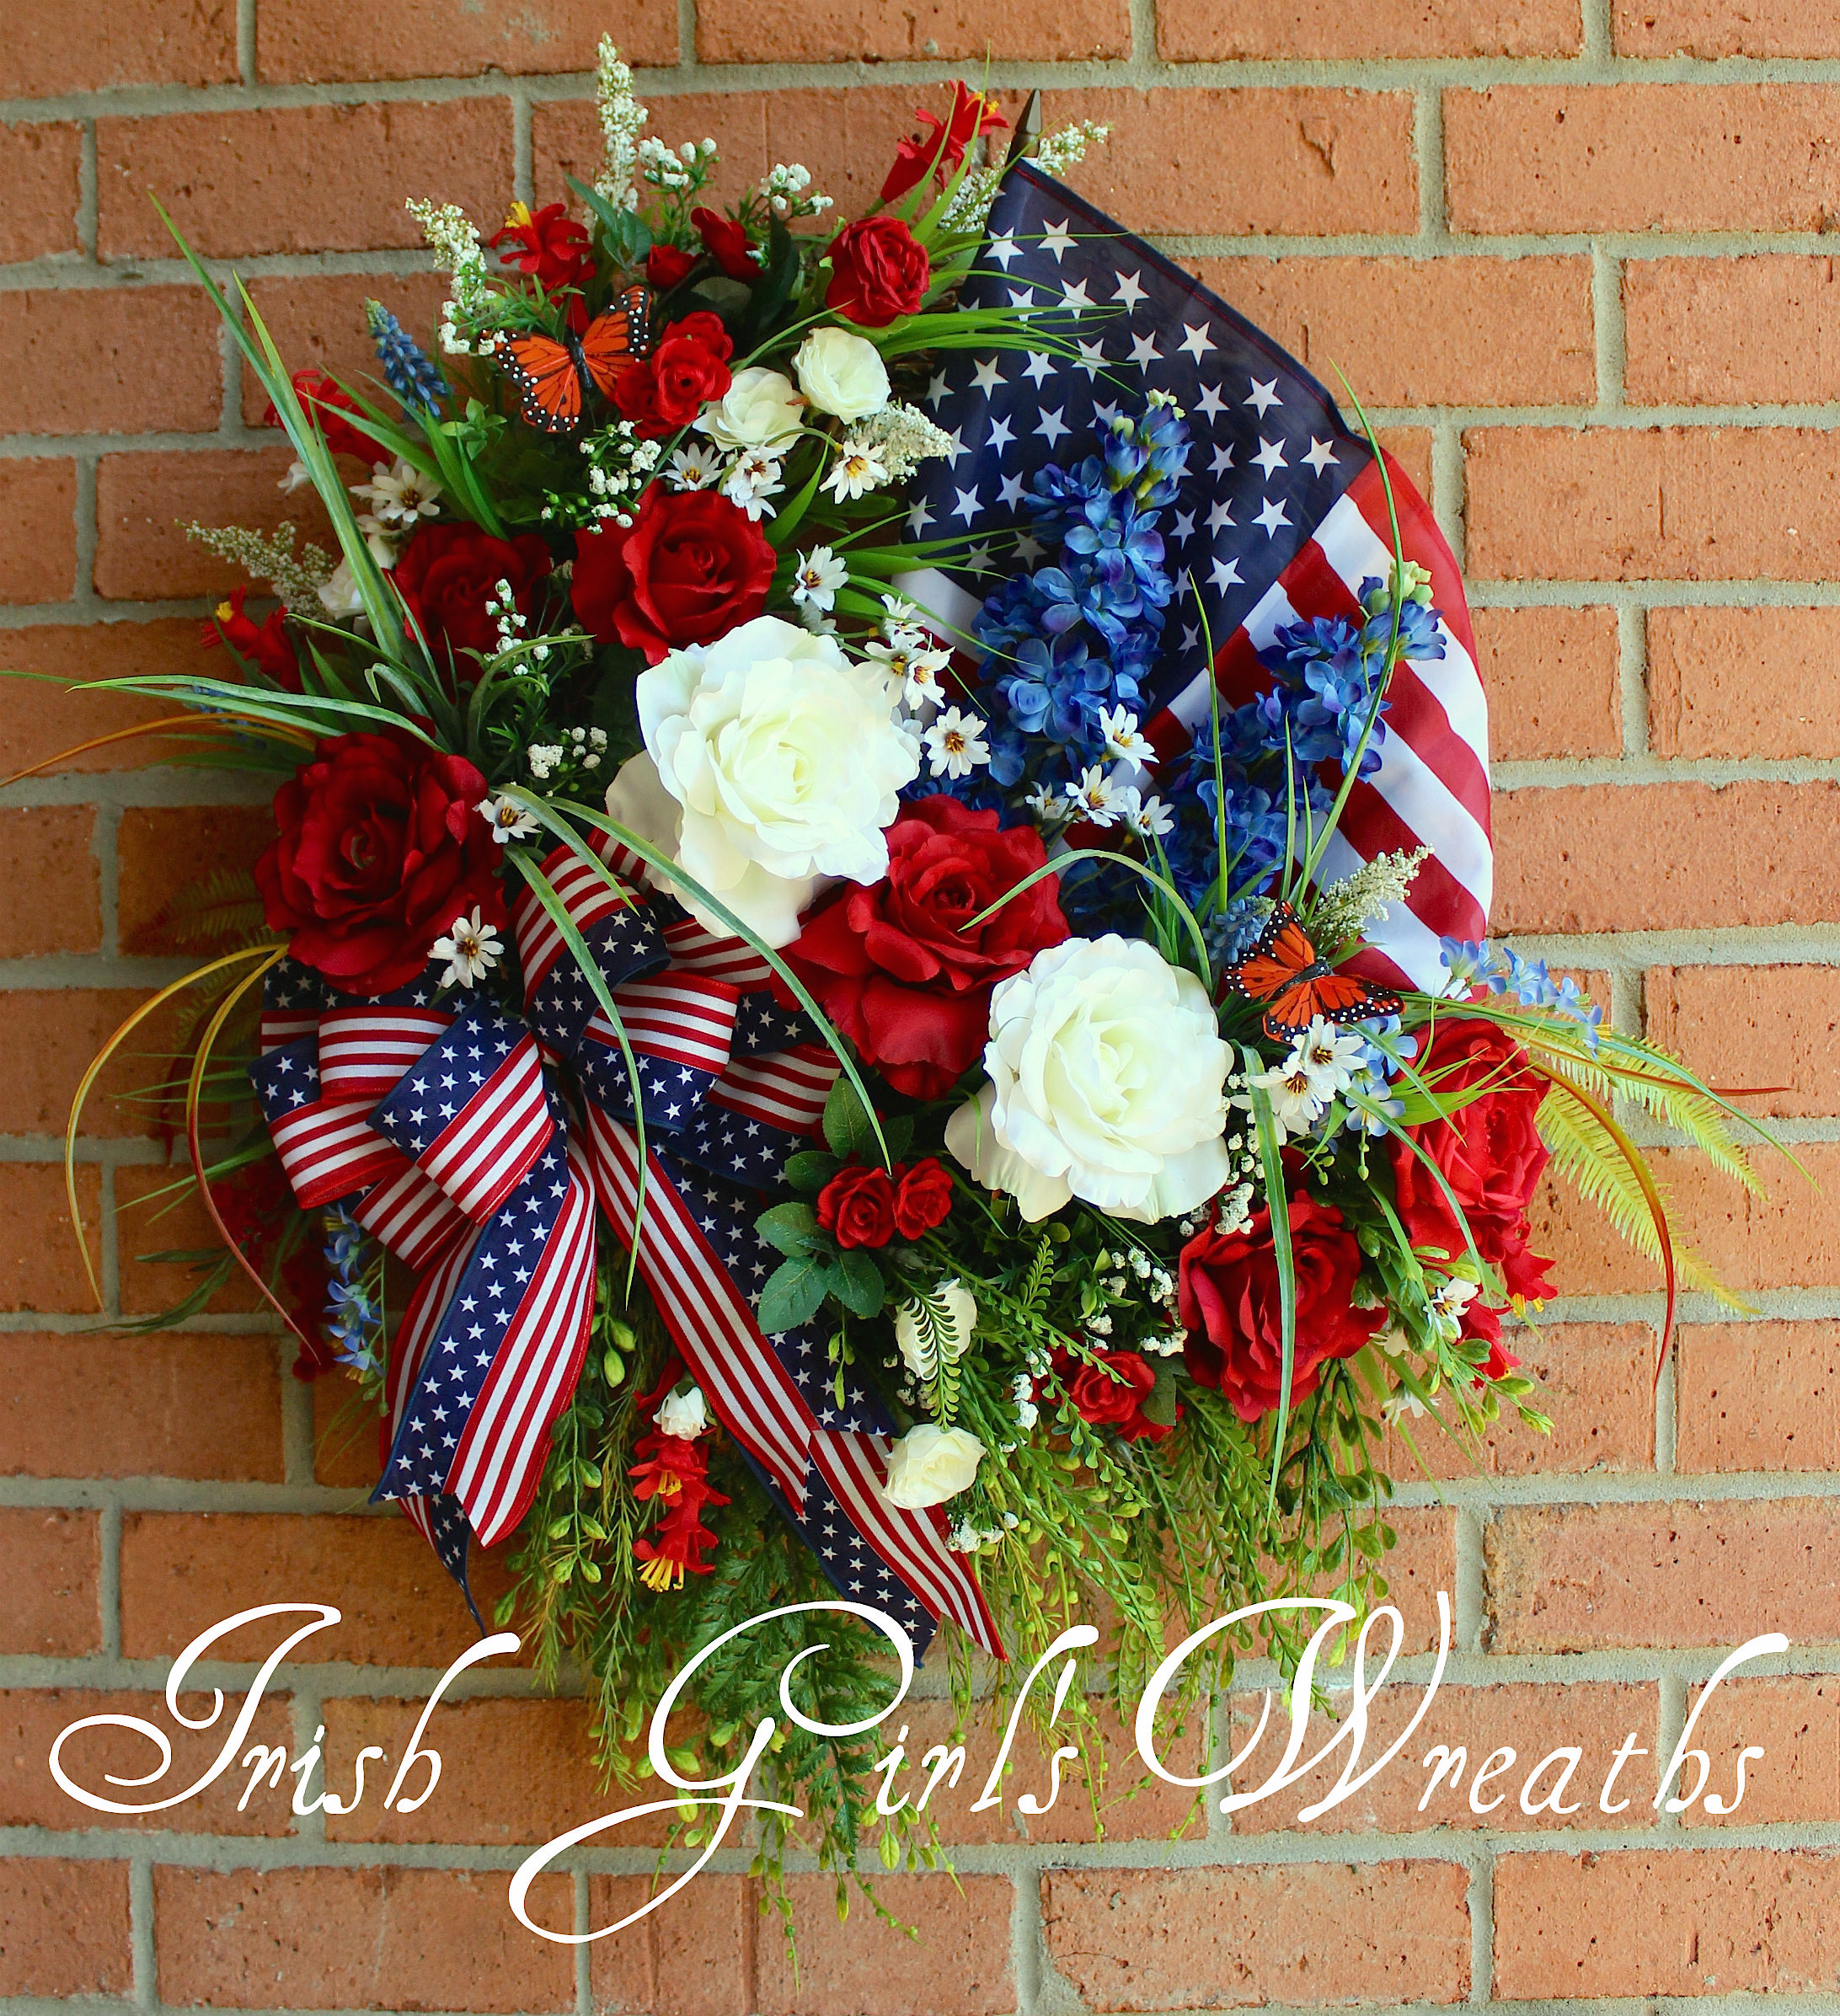 Patriotic Summer Rose Garden Wreath, Custom for Brittany